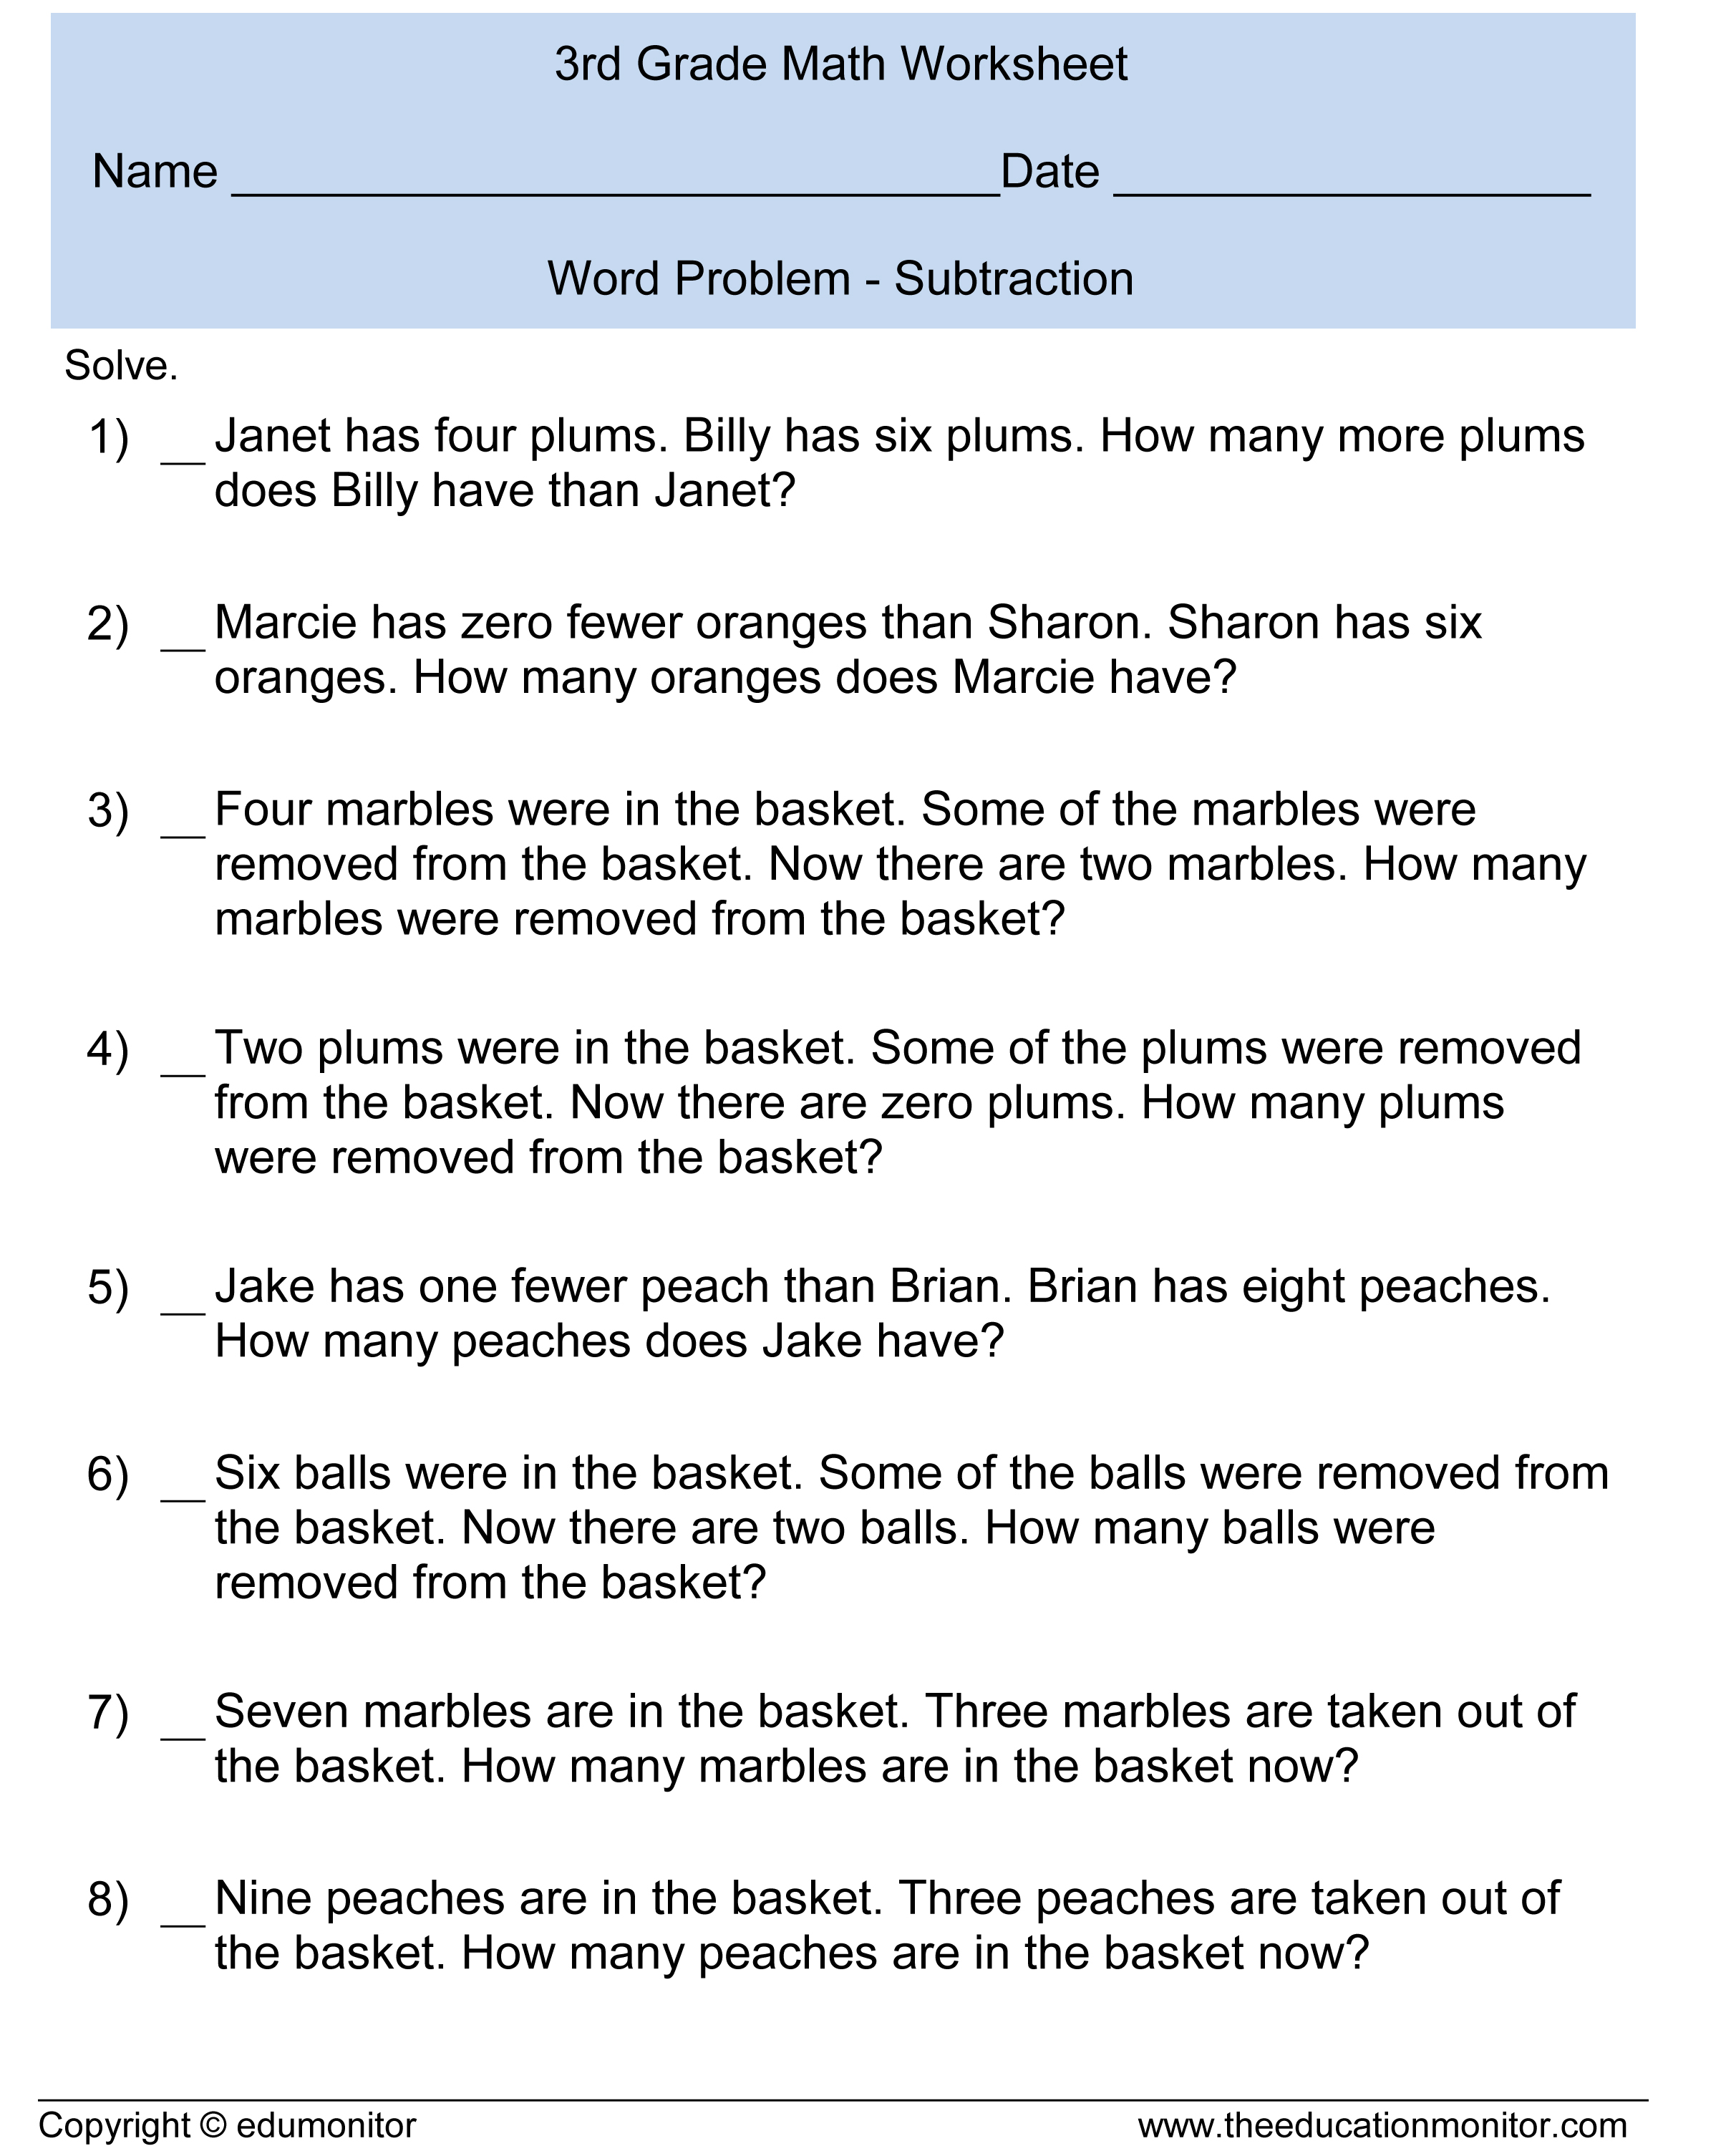 Worksheet 3rd Grade Subtraction Word Problems subtraction word problems 3rd grade for your kids discussion